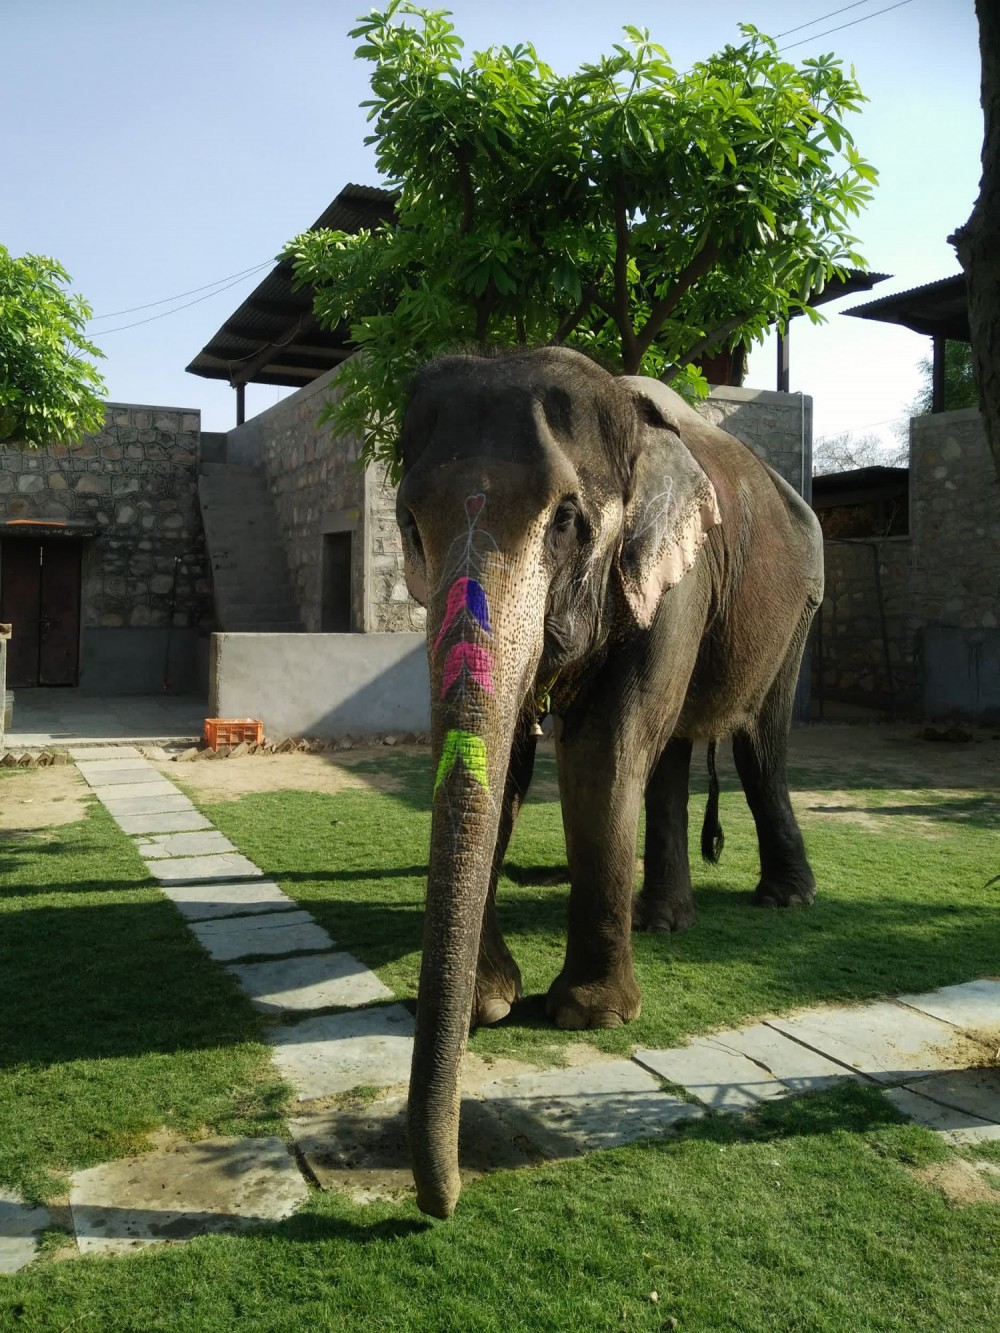 Elephant standing on grass at Amer Fort, India - World Animal Protection - Wildlife. Not entertainers